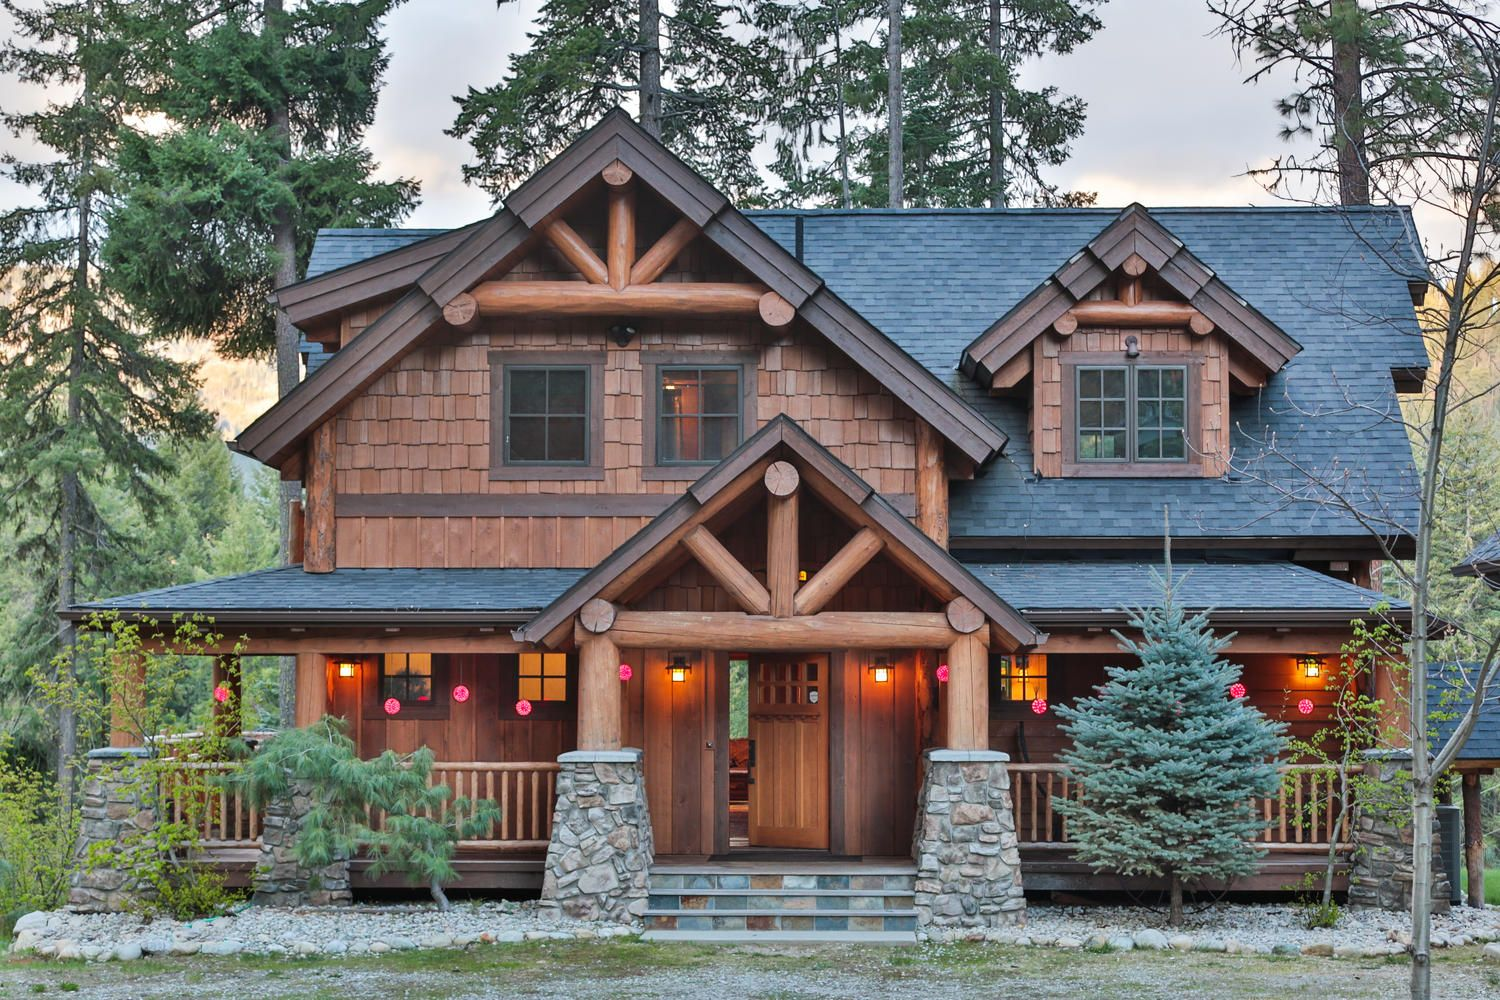 Big chief mountain lodge a natural element timber frame for Rustic lodge